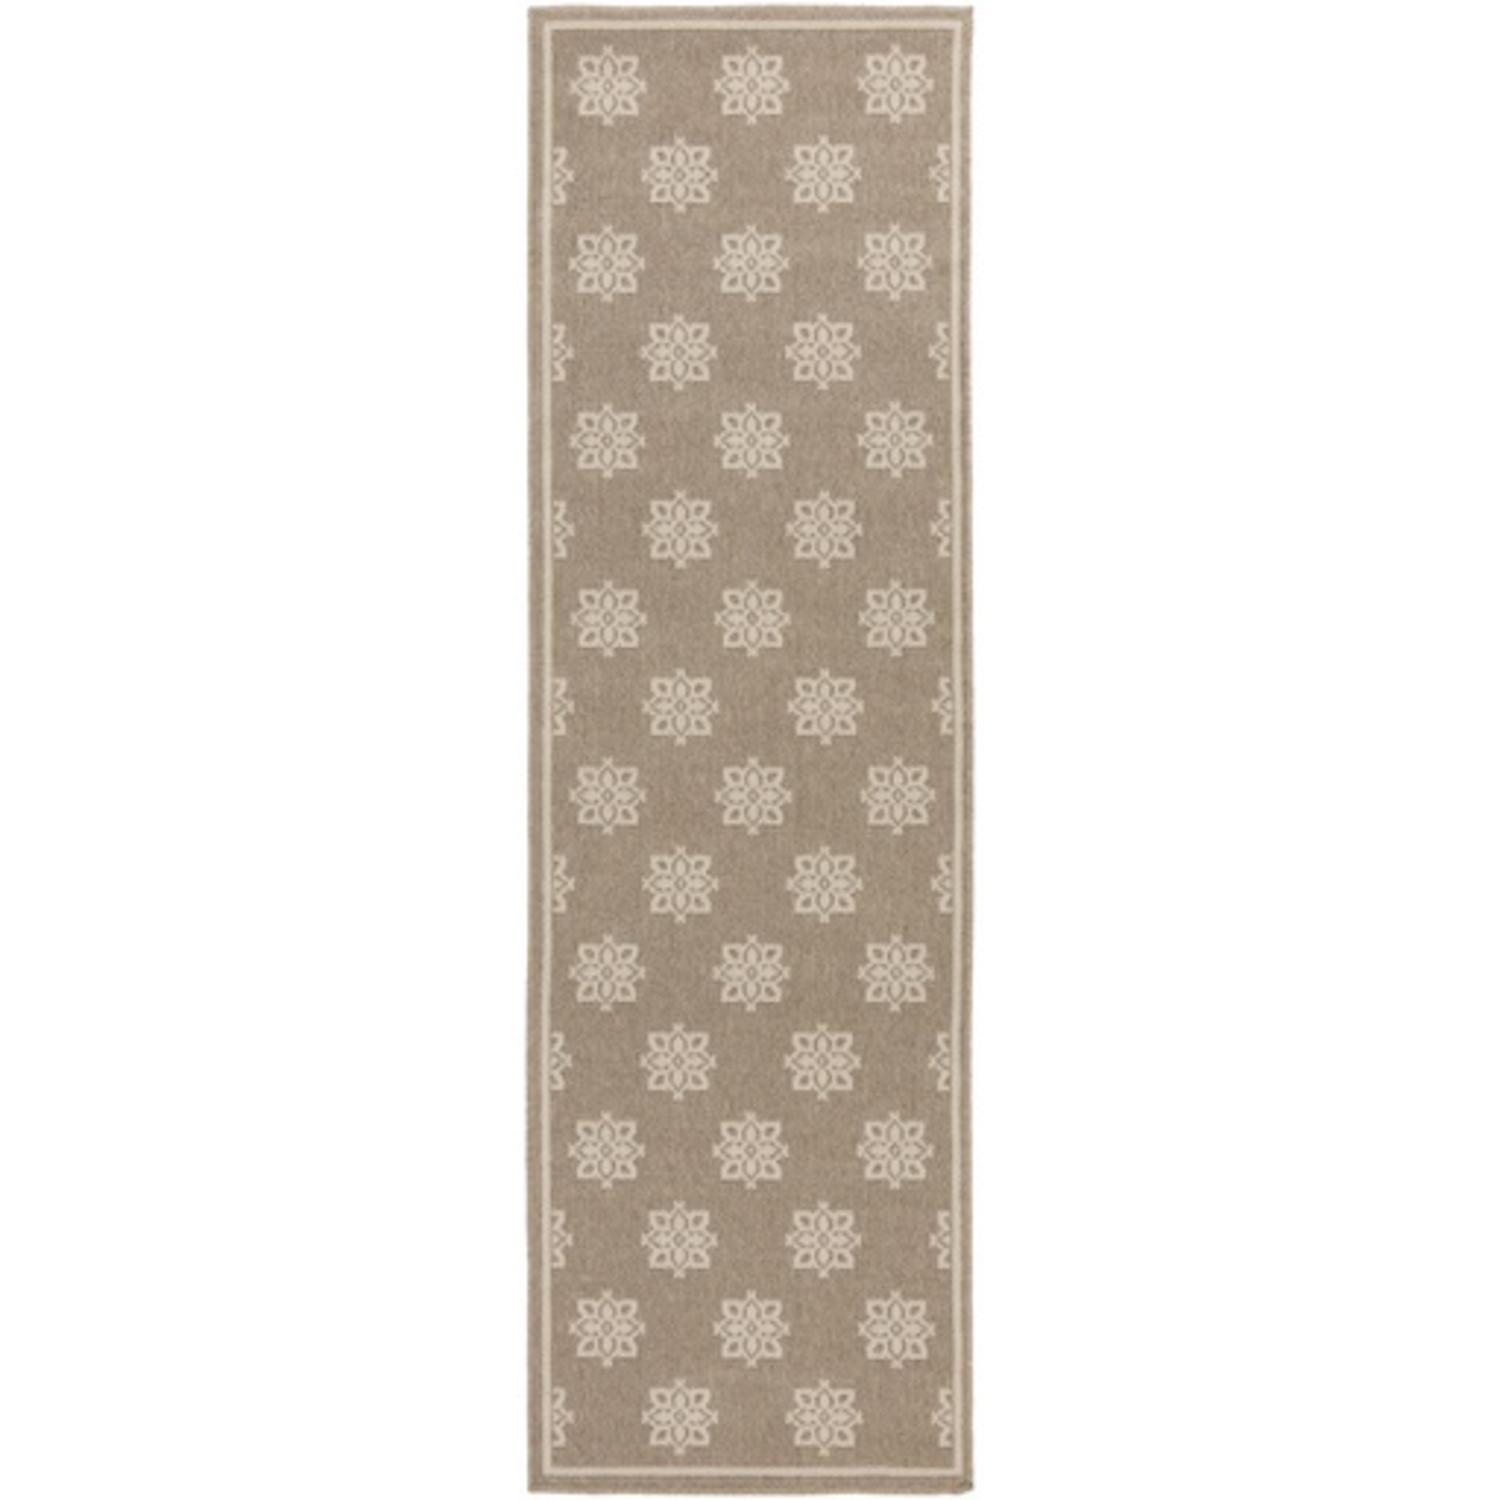 2.25' x 11.75' Summer Snowflake Tan and Beige Shed-Free Area Throw Rug Runner